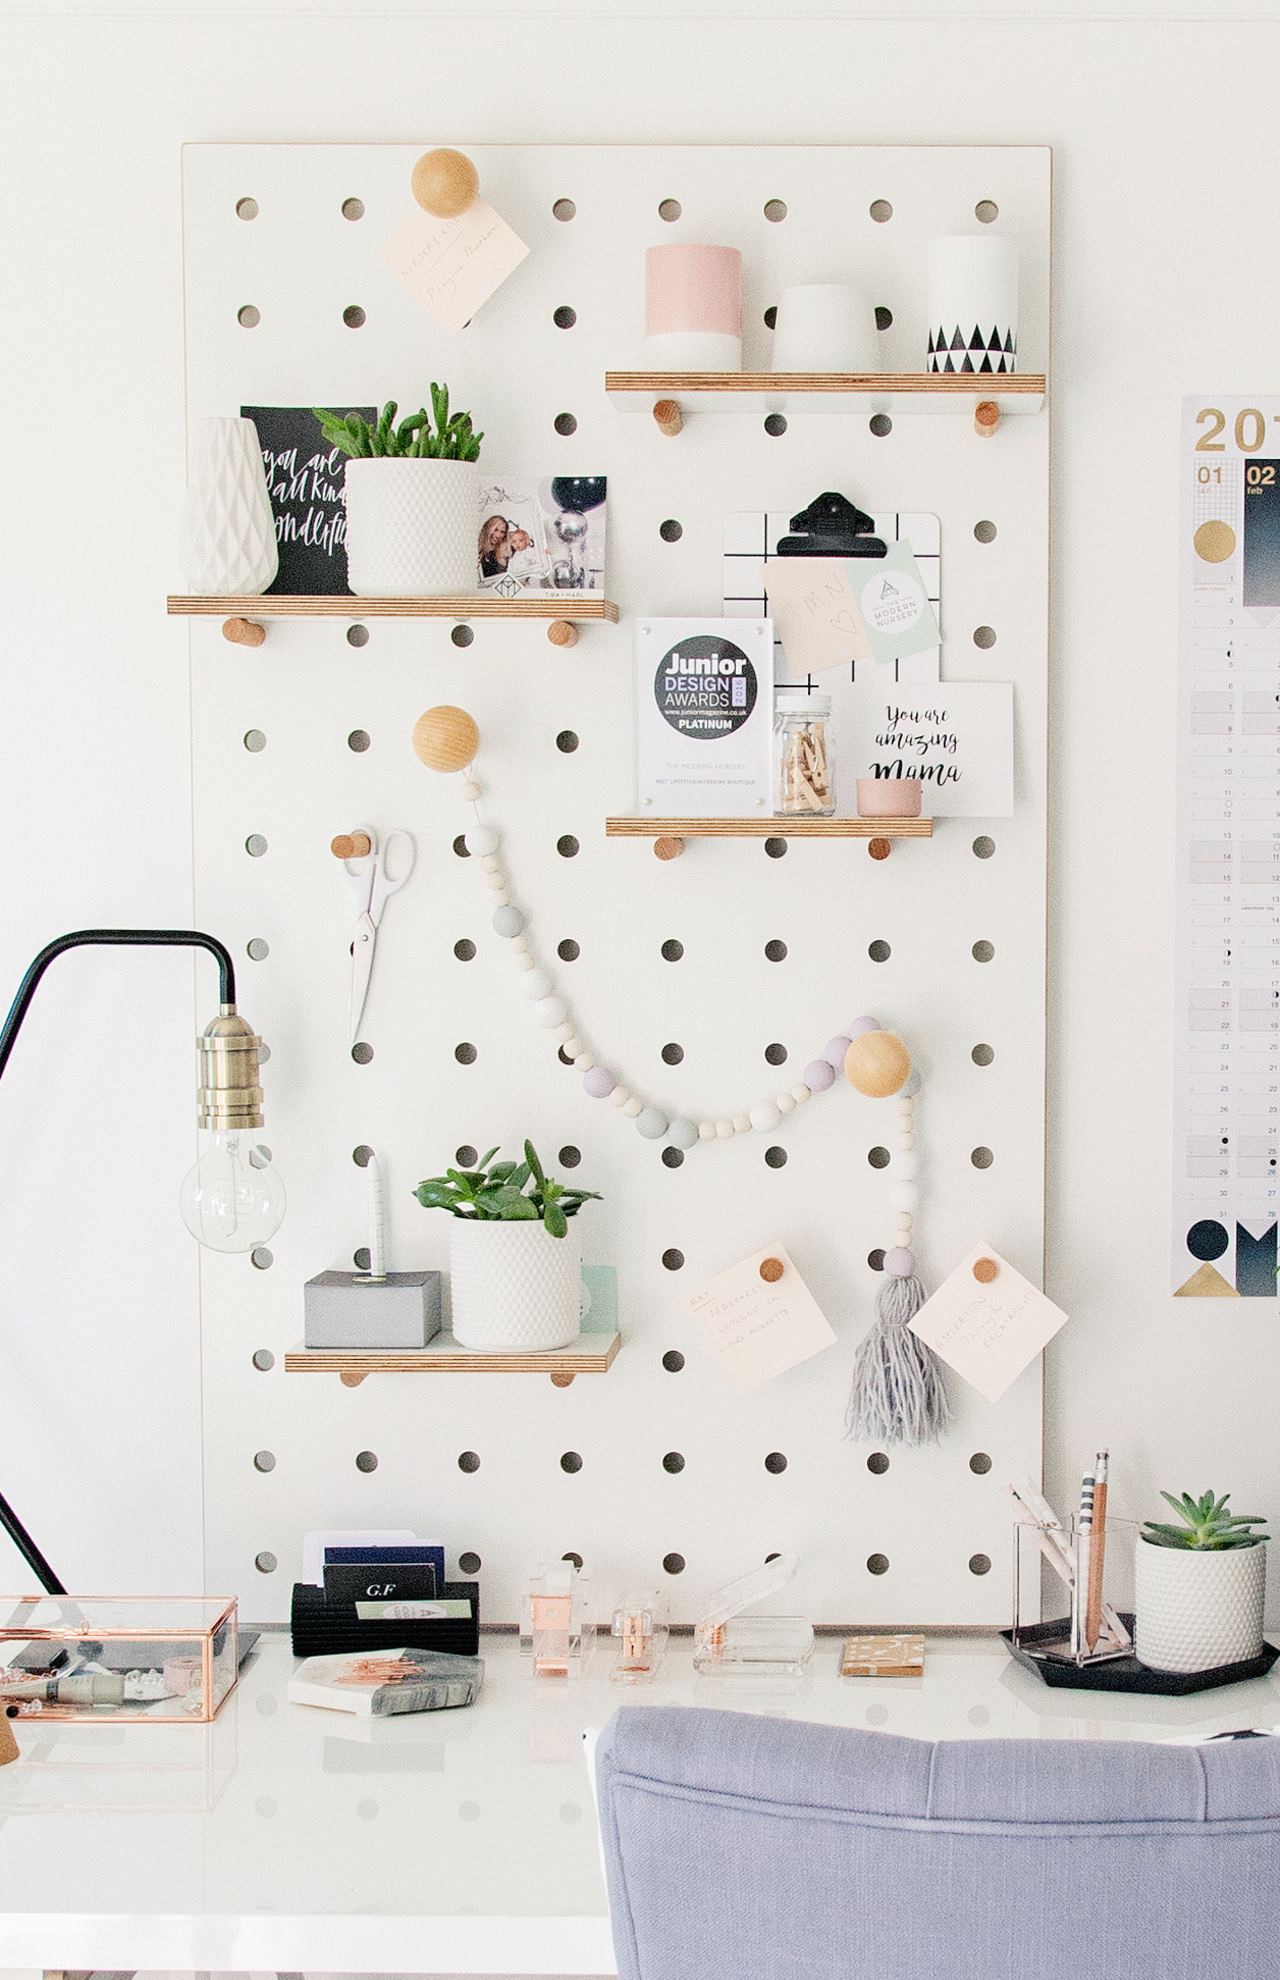 Pegboard With Shelves And Pegs - White   Pegboard Ideas In